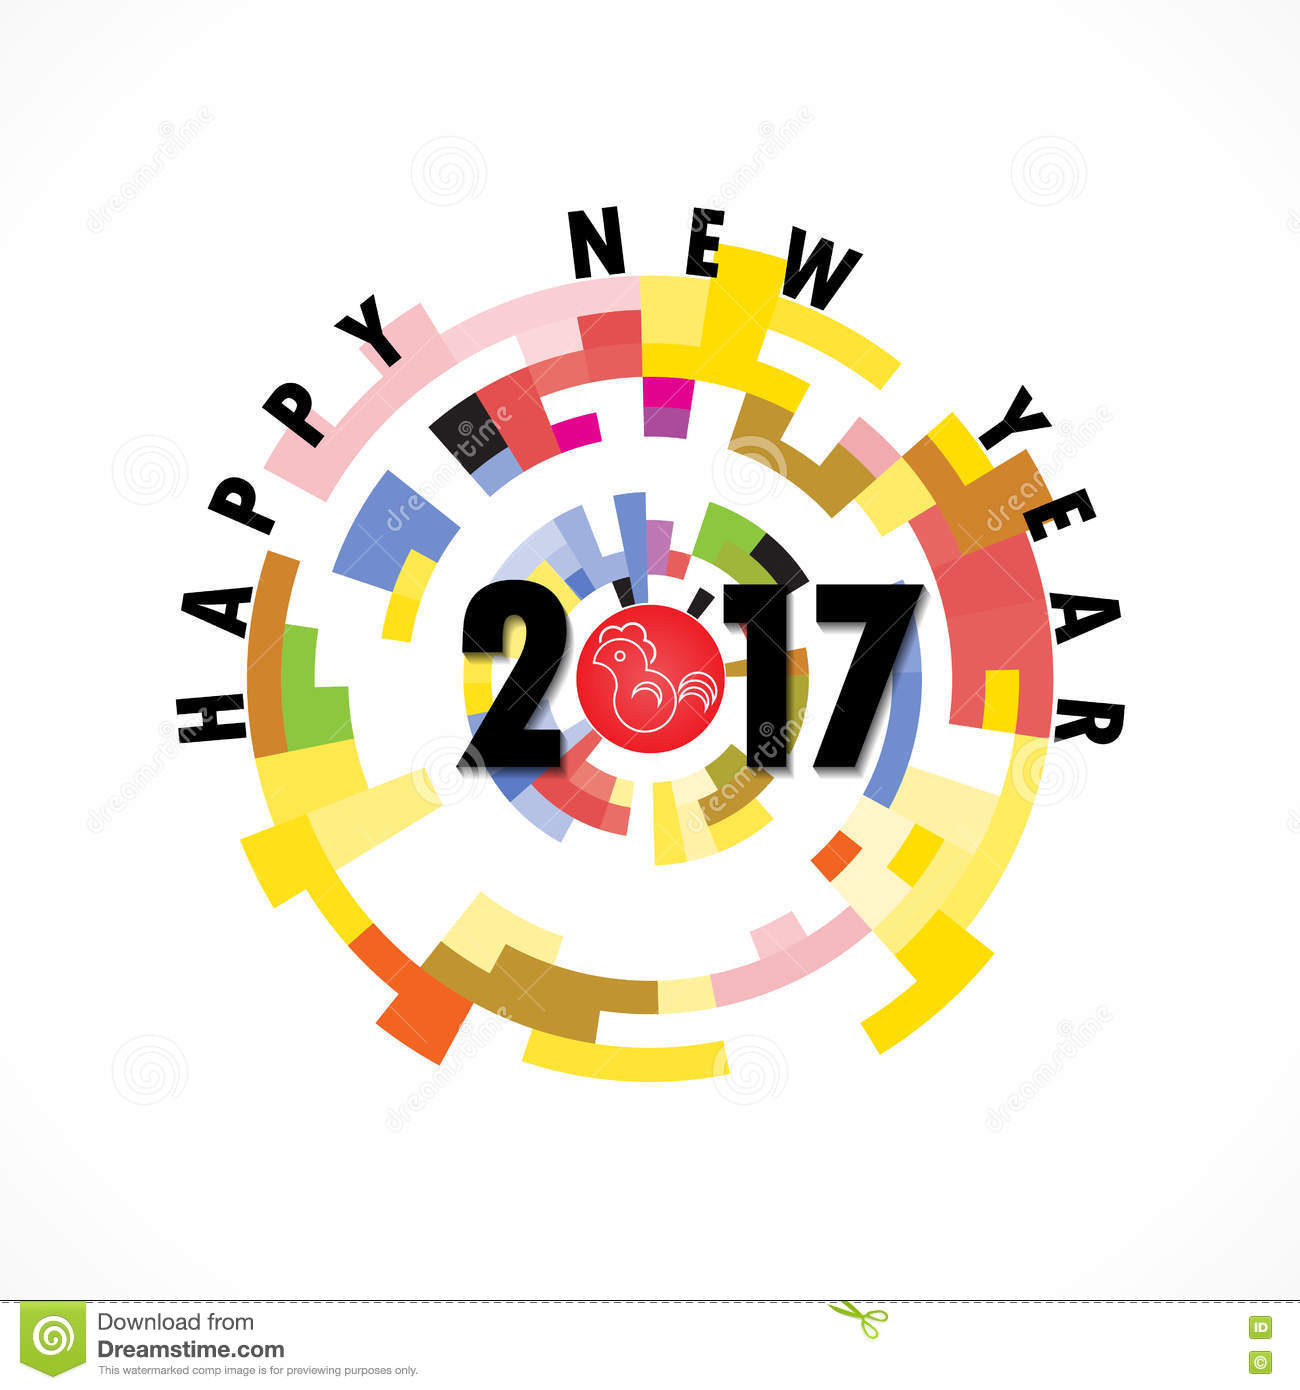 creative circle abstract vector logo design templatehappy new year 2017 holiday background2017 happy new year greeting cardvector illustration